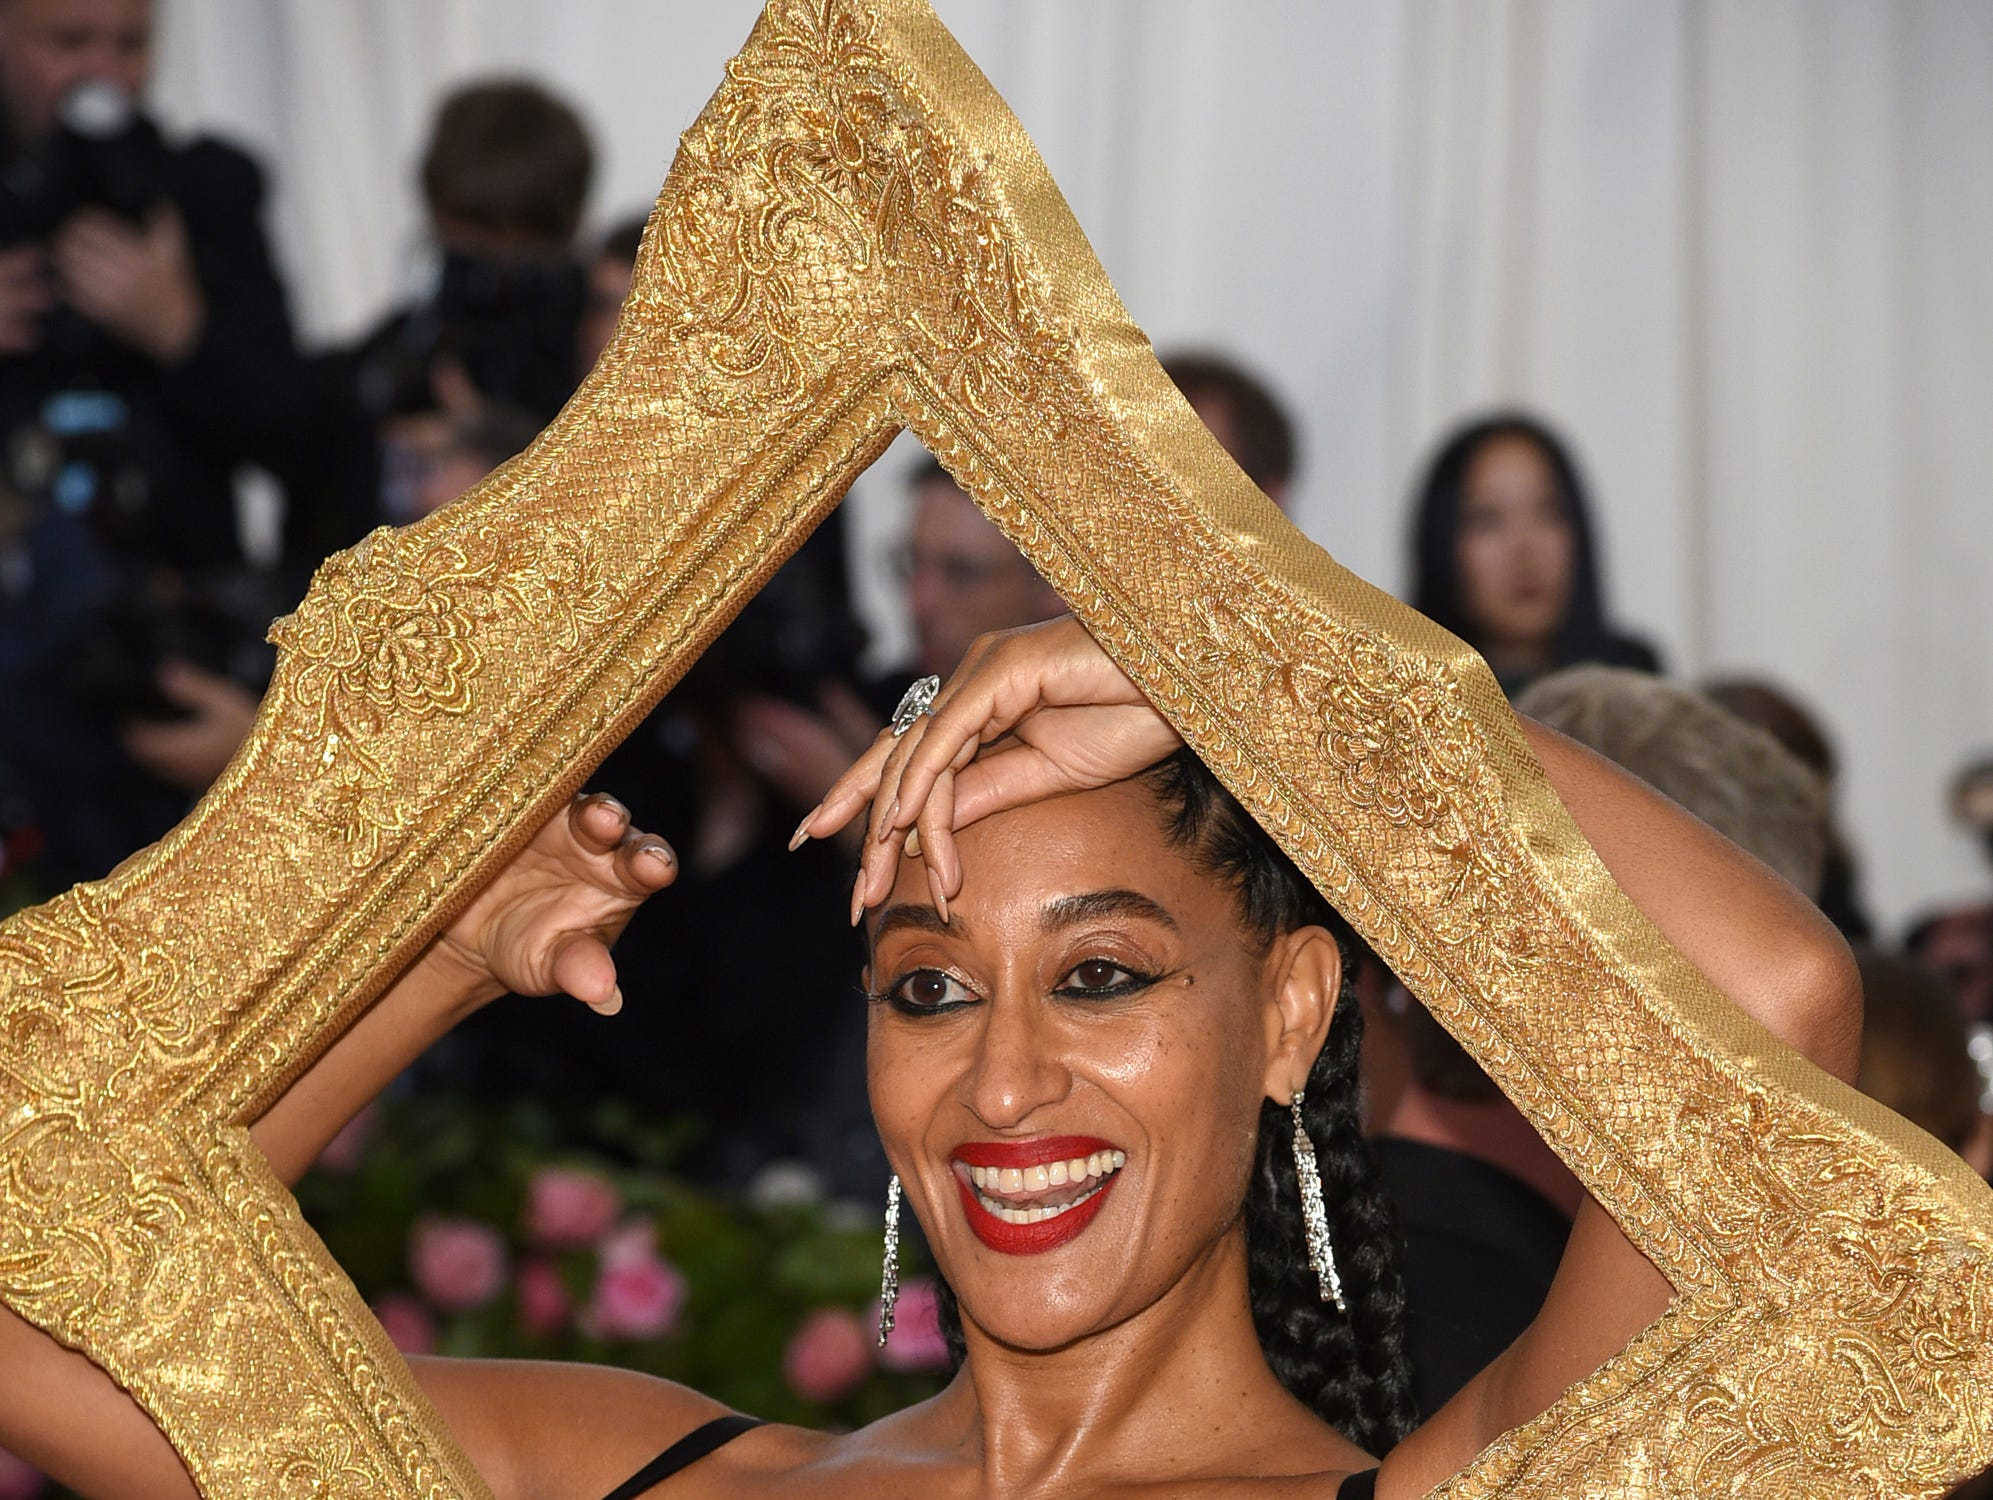 """Tracee Ellis Ross attends The Metropolitan Museum of Art's Costume Institute benefit gala celebrating the opening of the """"Camp: Notes on Fashion"""" exhibition on Monday, May 6, 2019, in New York. (Photo by Evan Agostini/Invision/AP) ORG XMIT: NYKV263"""